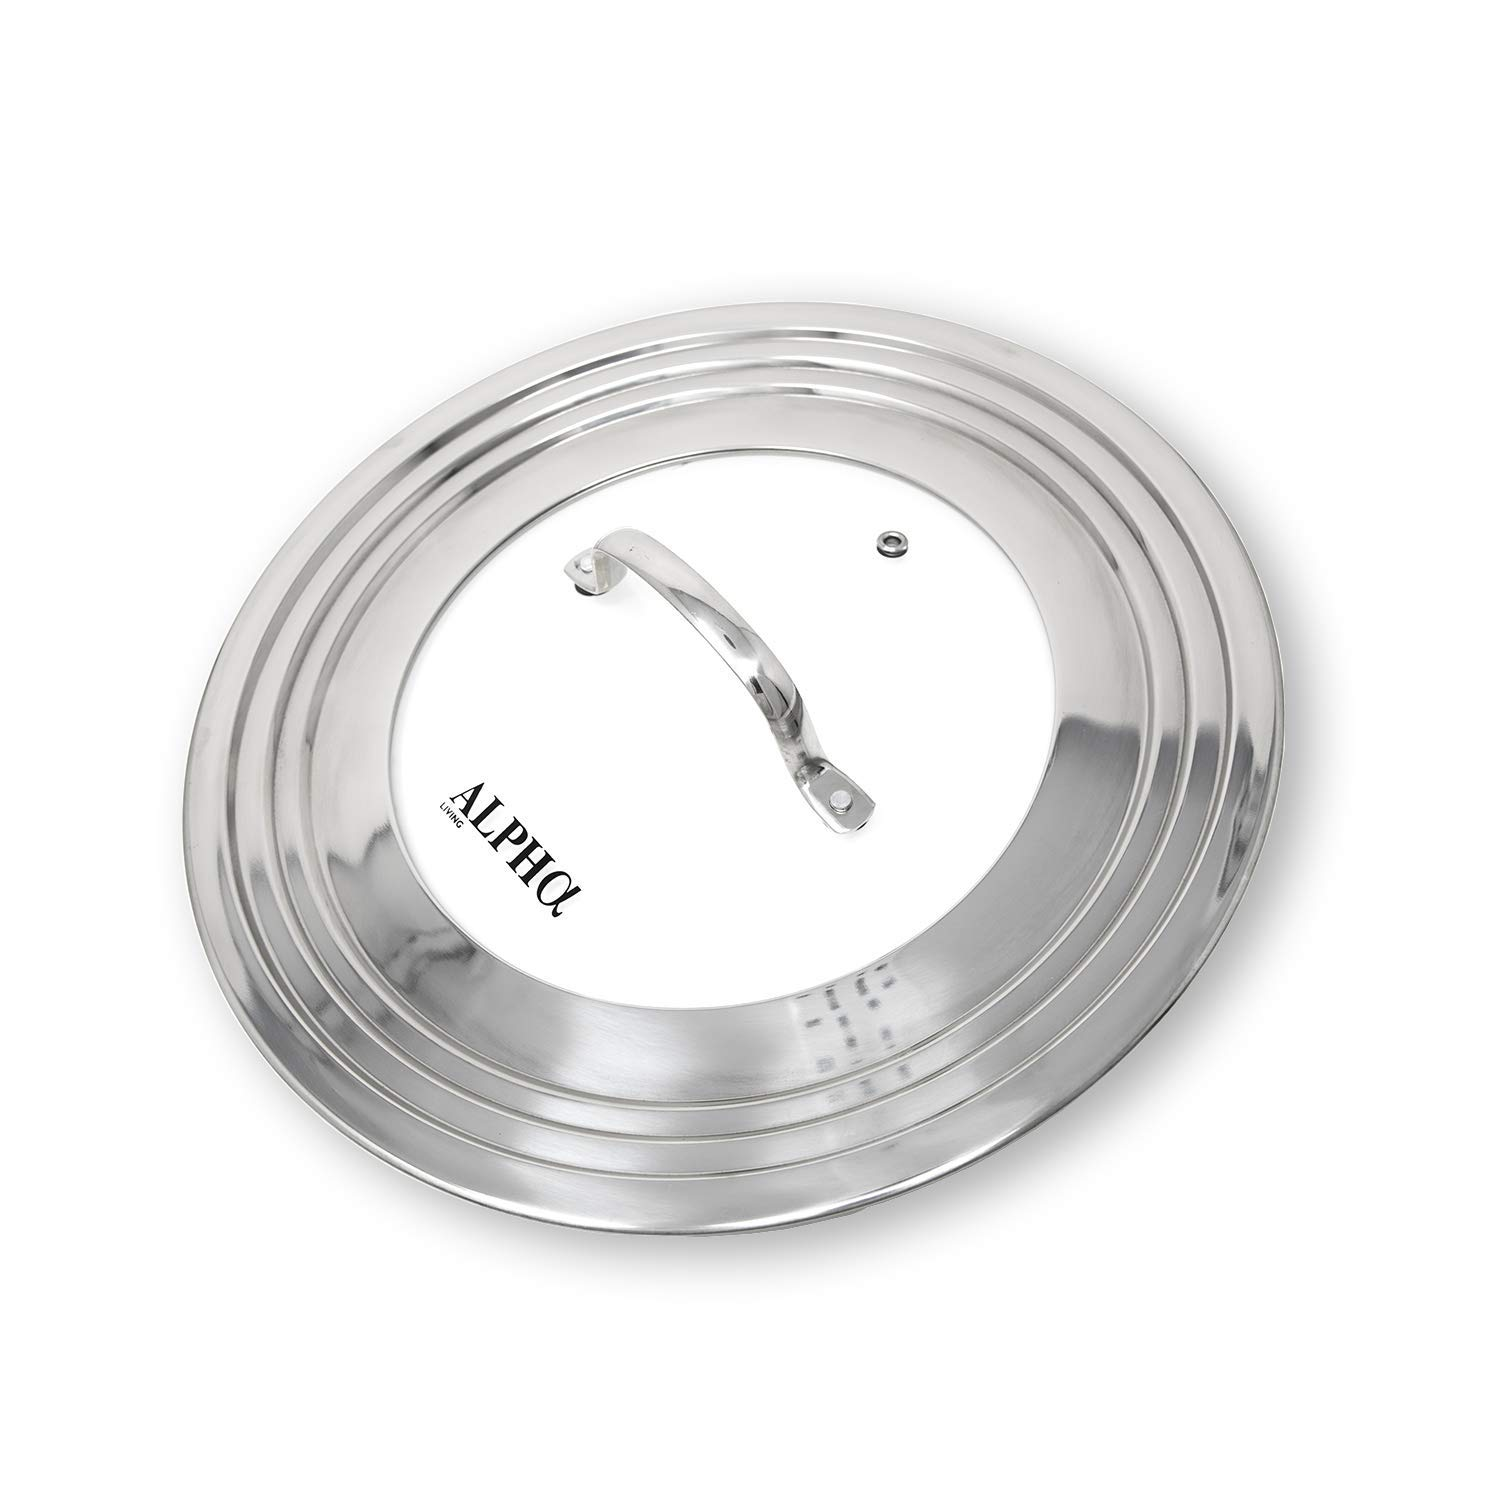 Alpha Living 60015 7'' to 12'' High Grade Stainless Steel and Glass Universal, Fits All Pots, Replacement Frying Pan Cover and Skillet Lids, 7-12 inches, by ALPHA LIVING